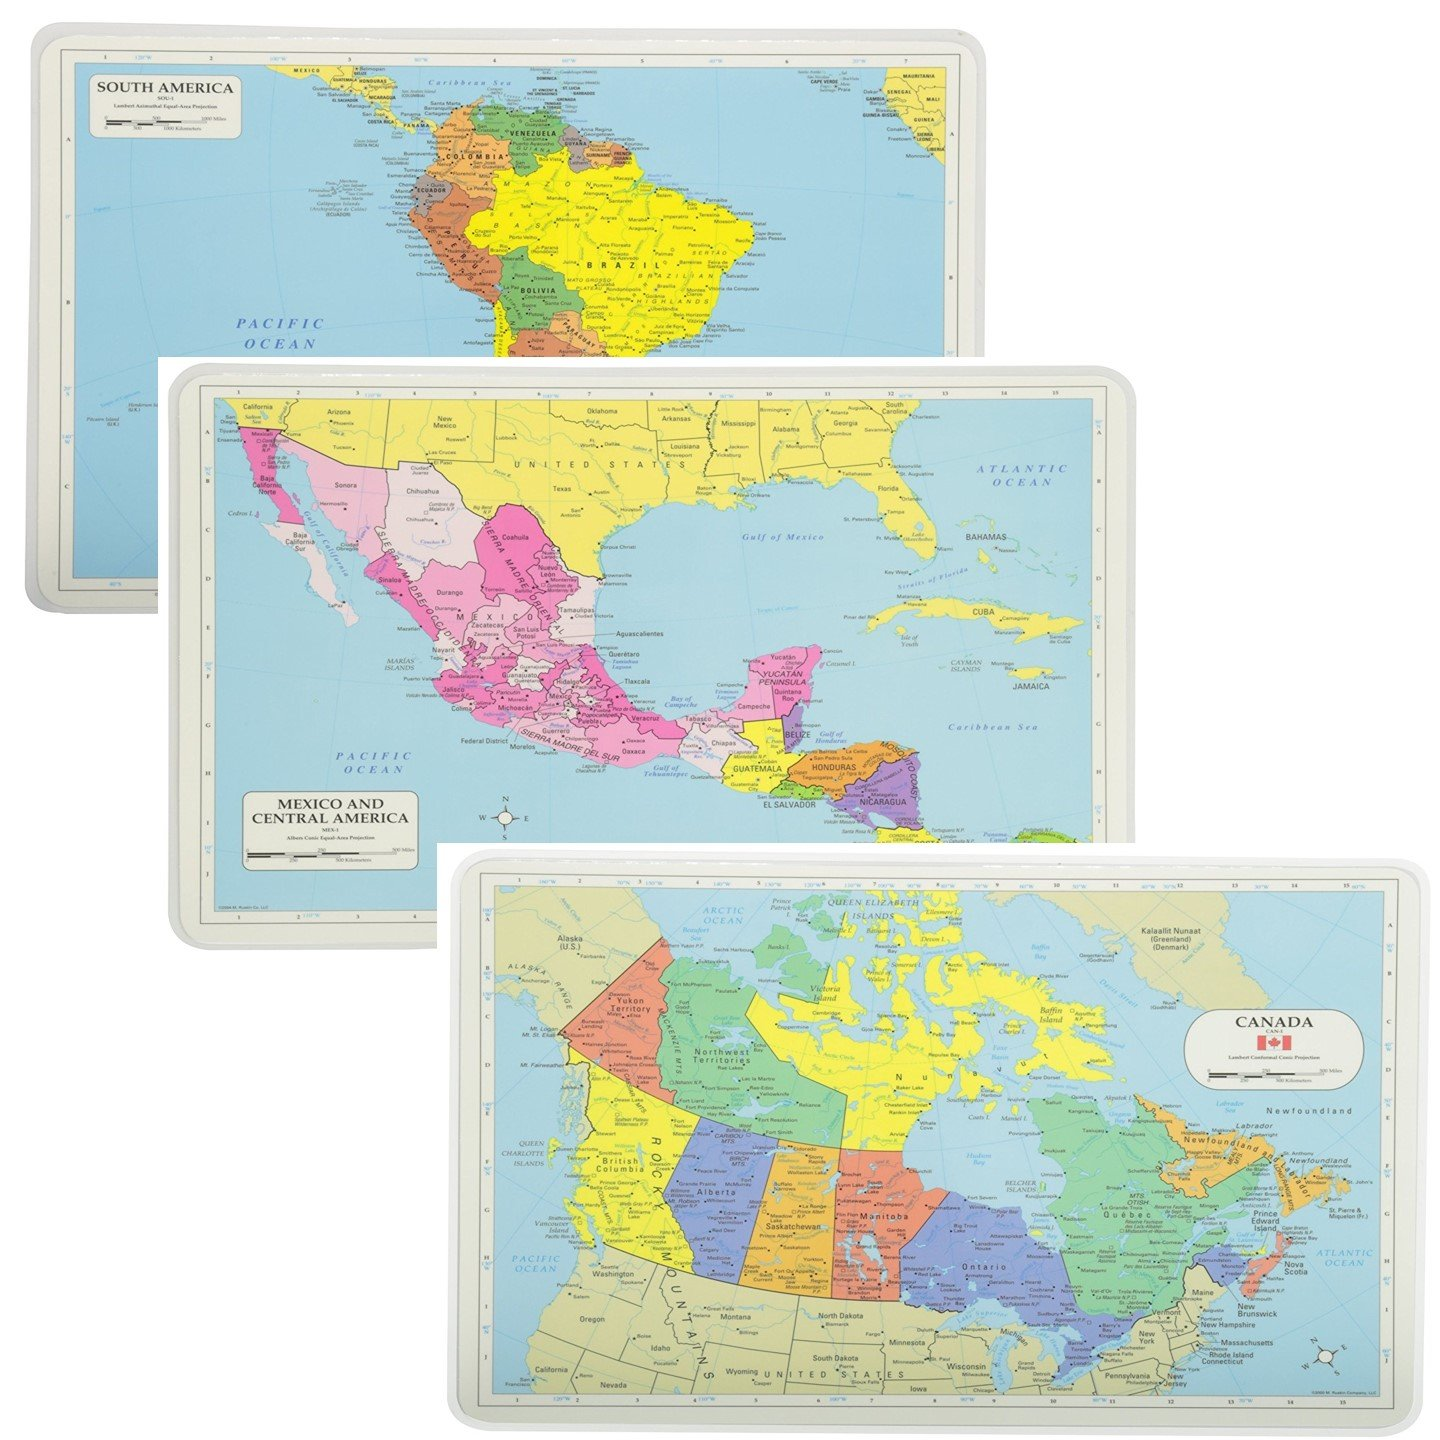 (South America Central America And Canda Maps) - Painless Learning Educational Placemats South America Central America And Canada Maps Set Non Slip Washable  South America Central America And Canda Maps B0723CT2TF